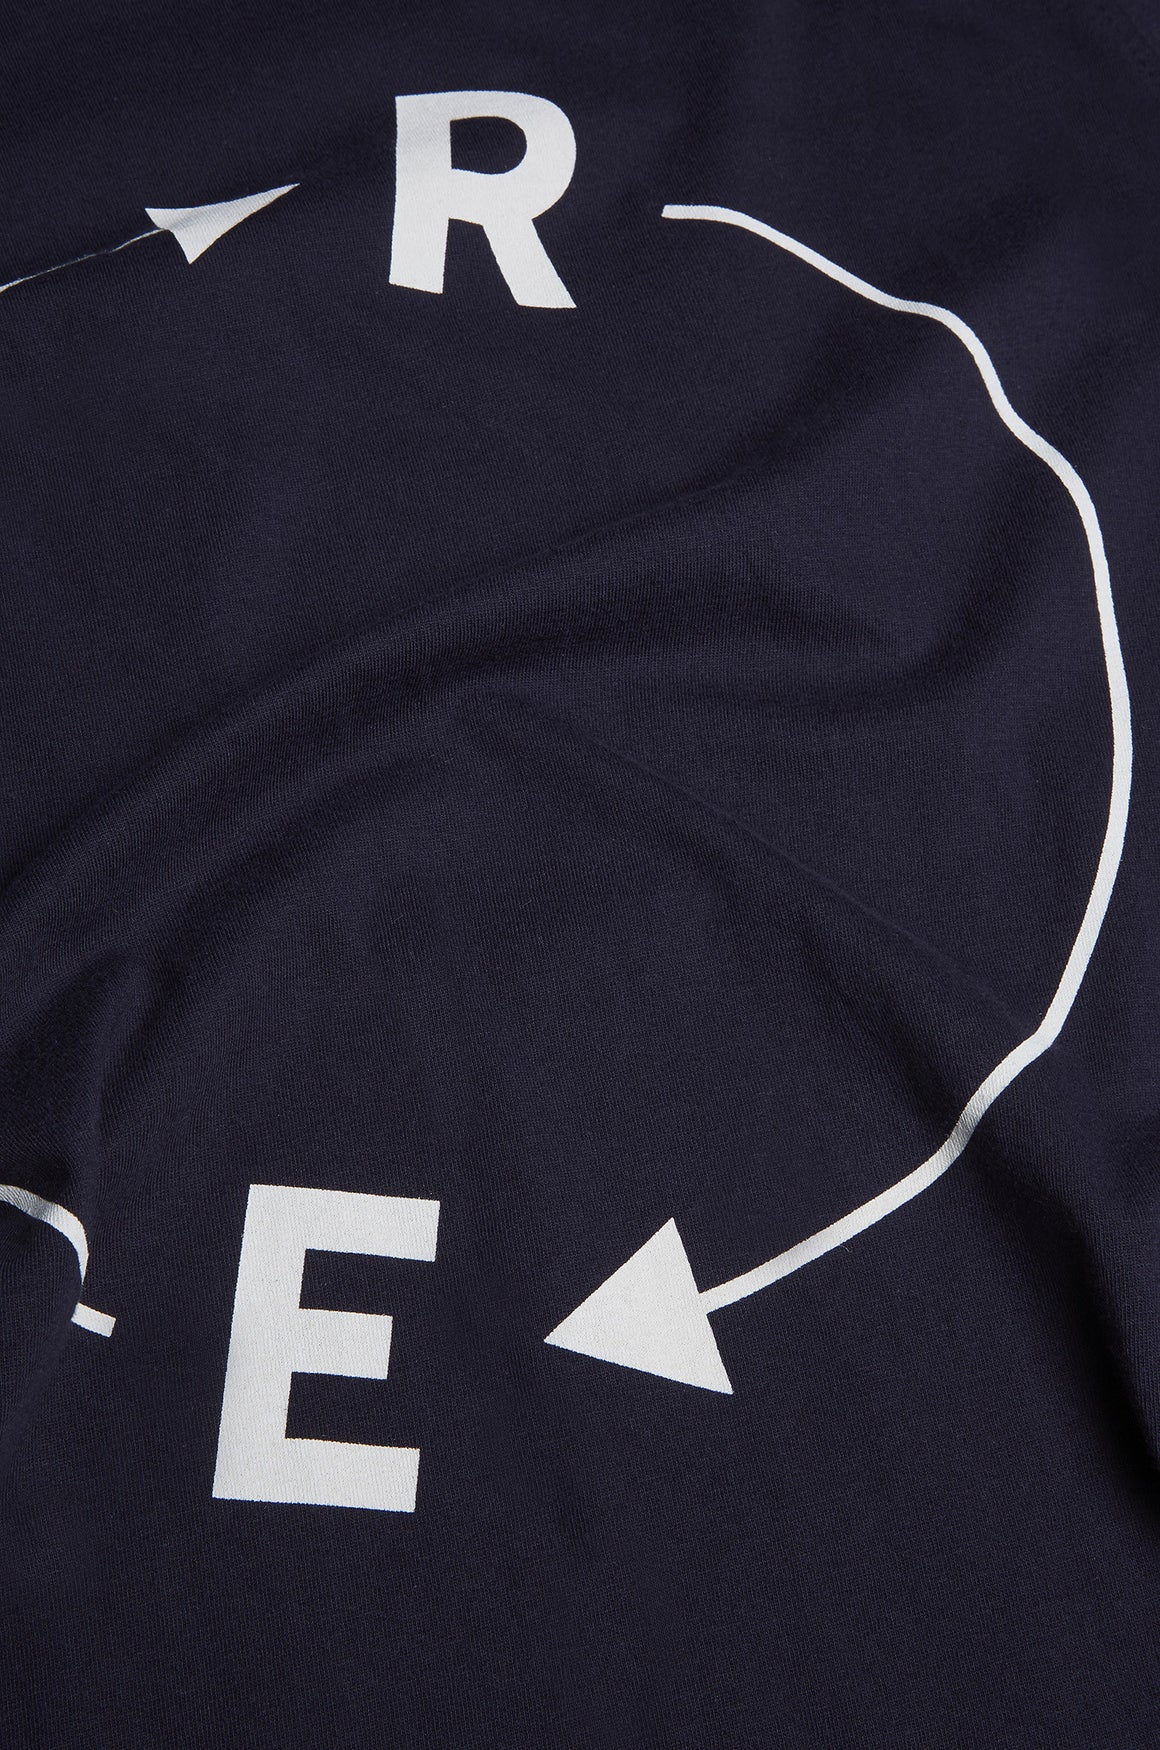 Men's Enigma Cipher Tee | Dark Navy